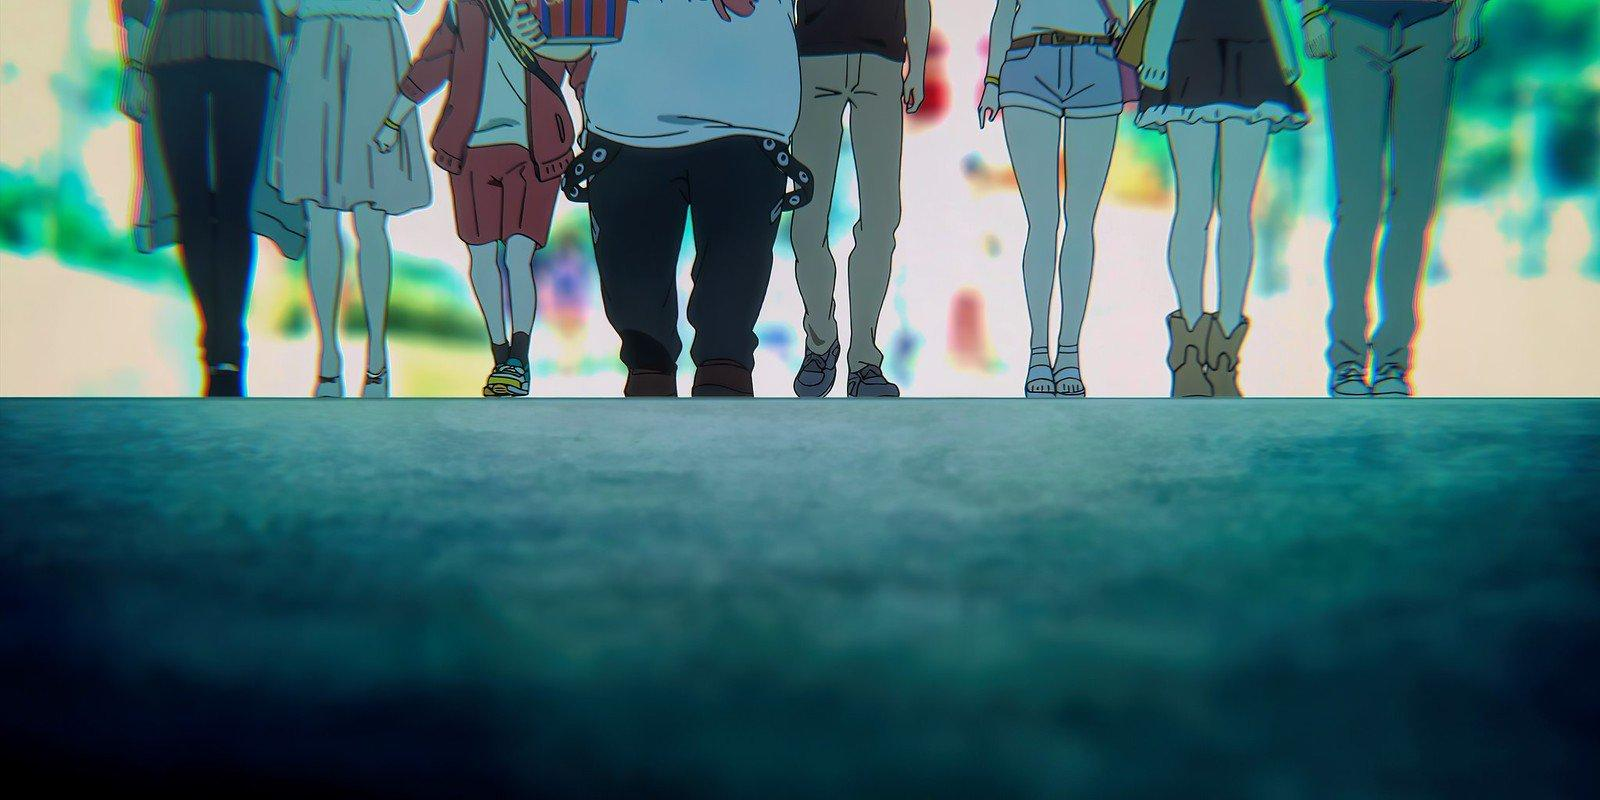 A Silent Voice Hd Wallpapers - Wallpaper Cave